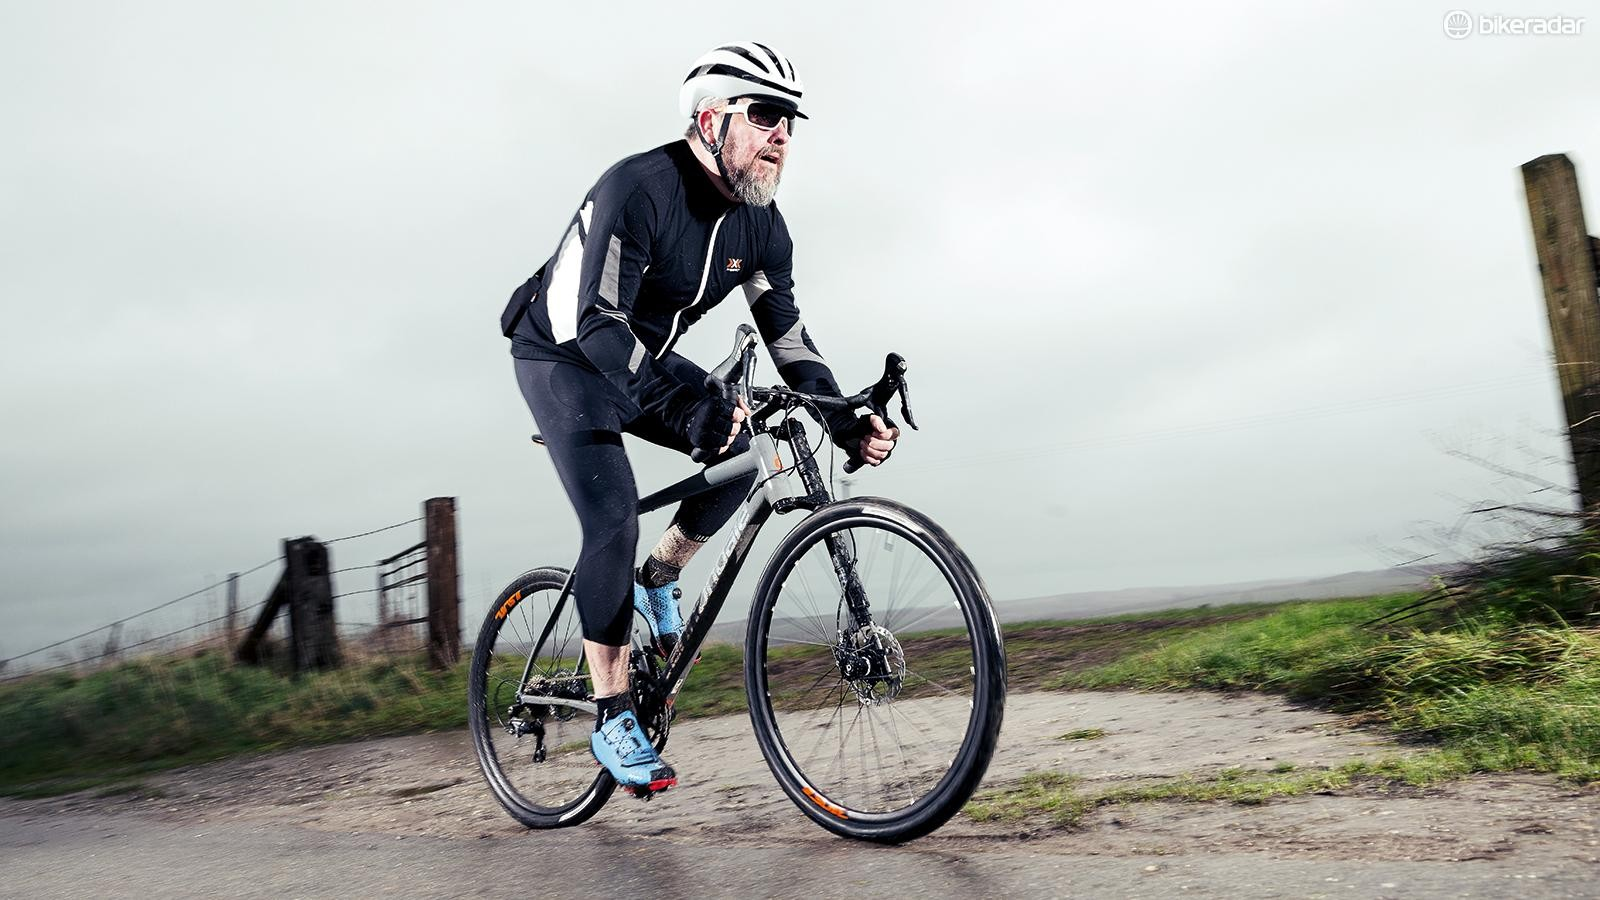 The word 'unique' is almost meaningless these days, but Cannondale's Slate really isn't like any previous road bike